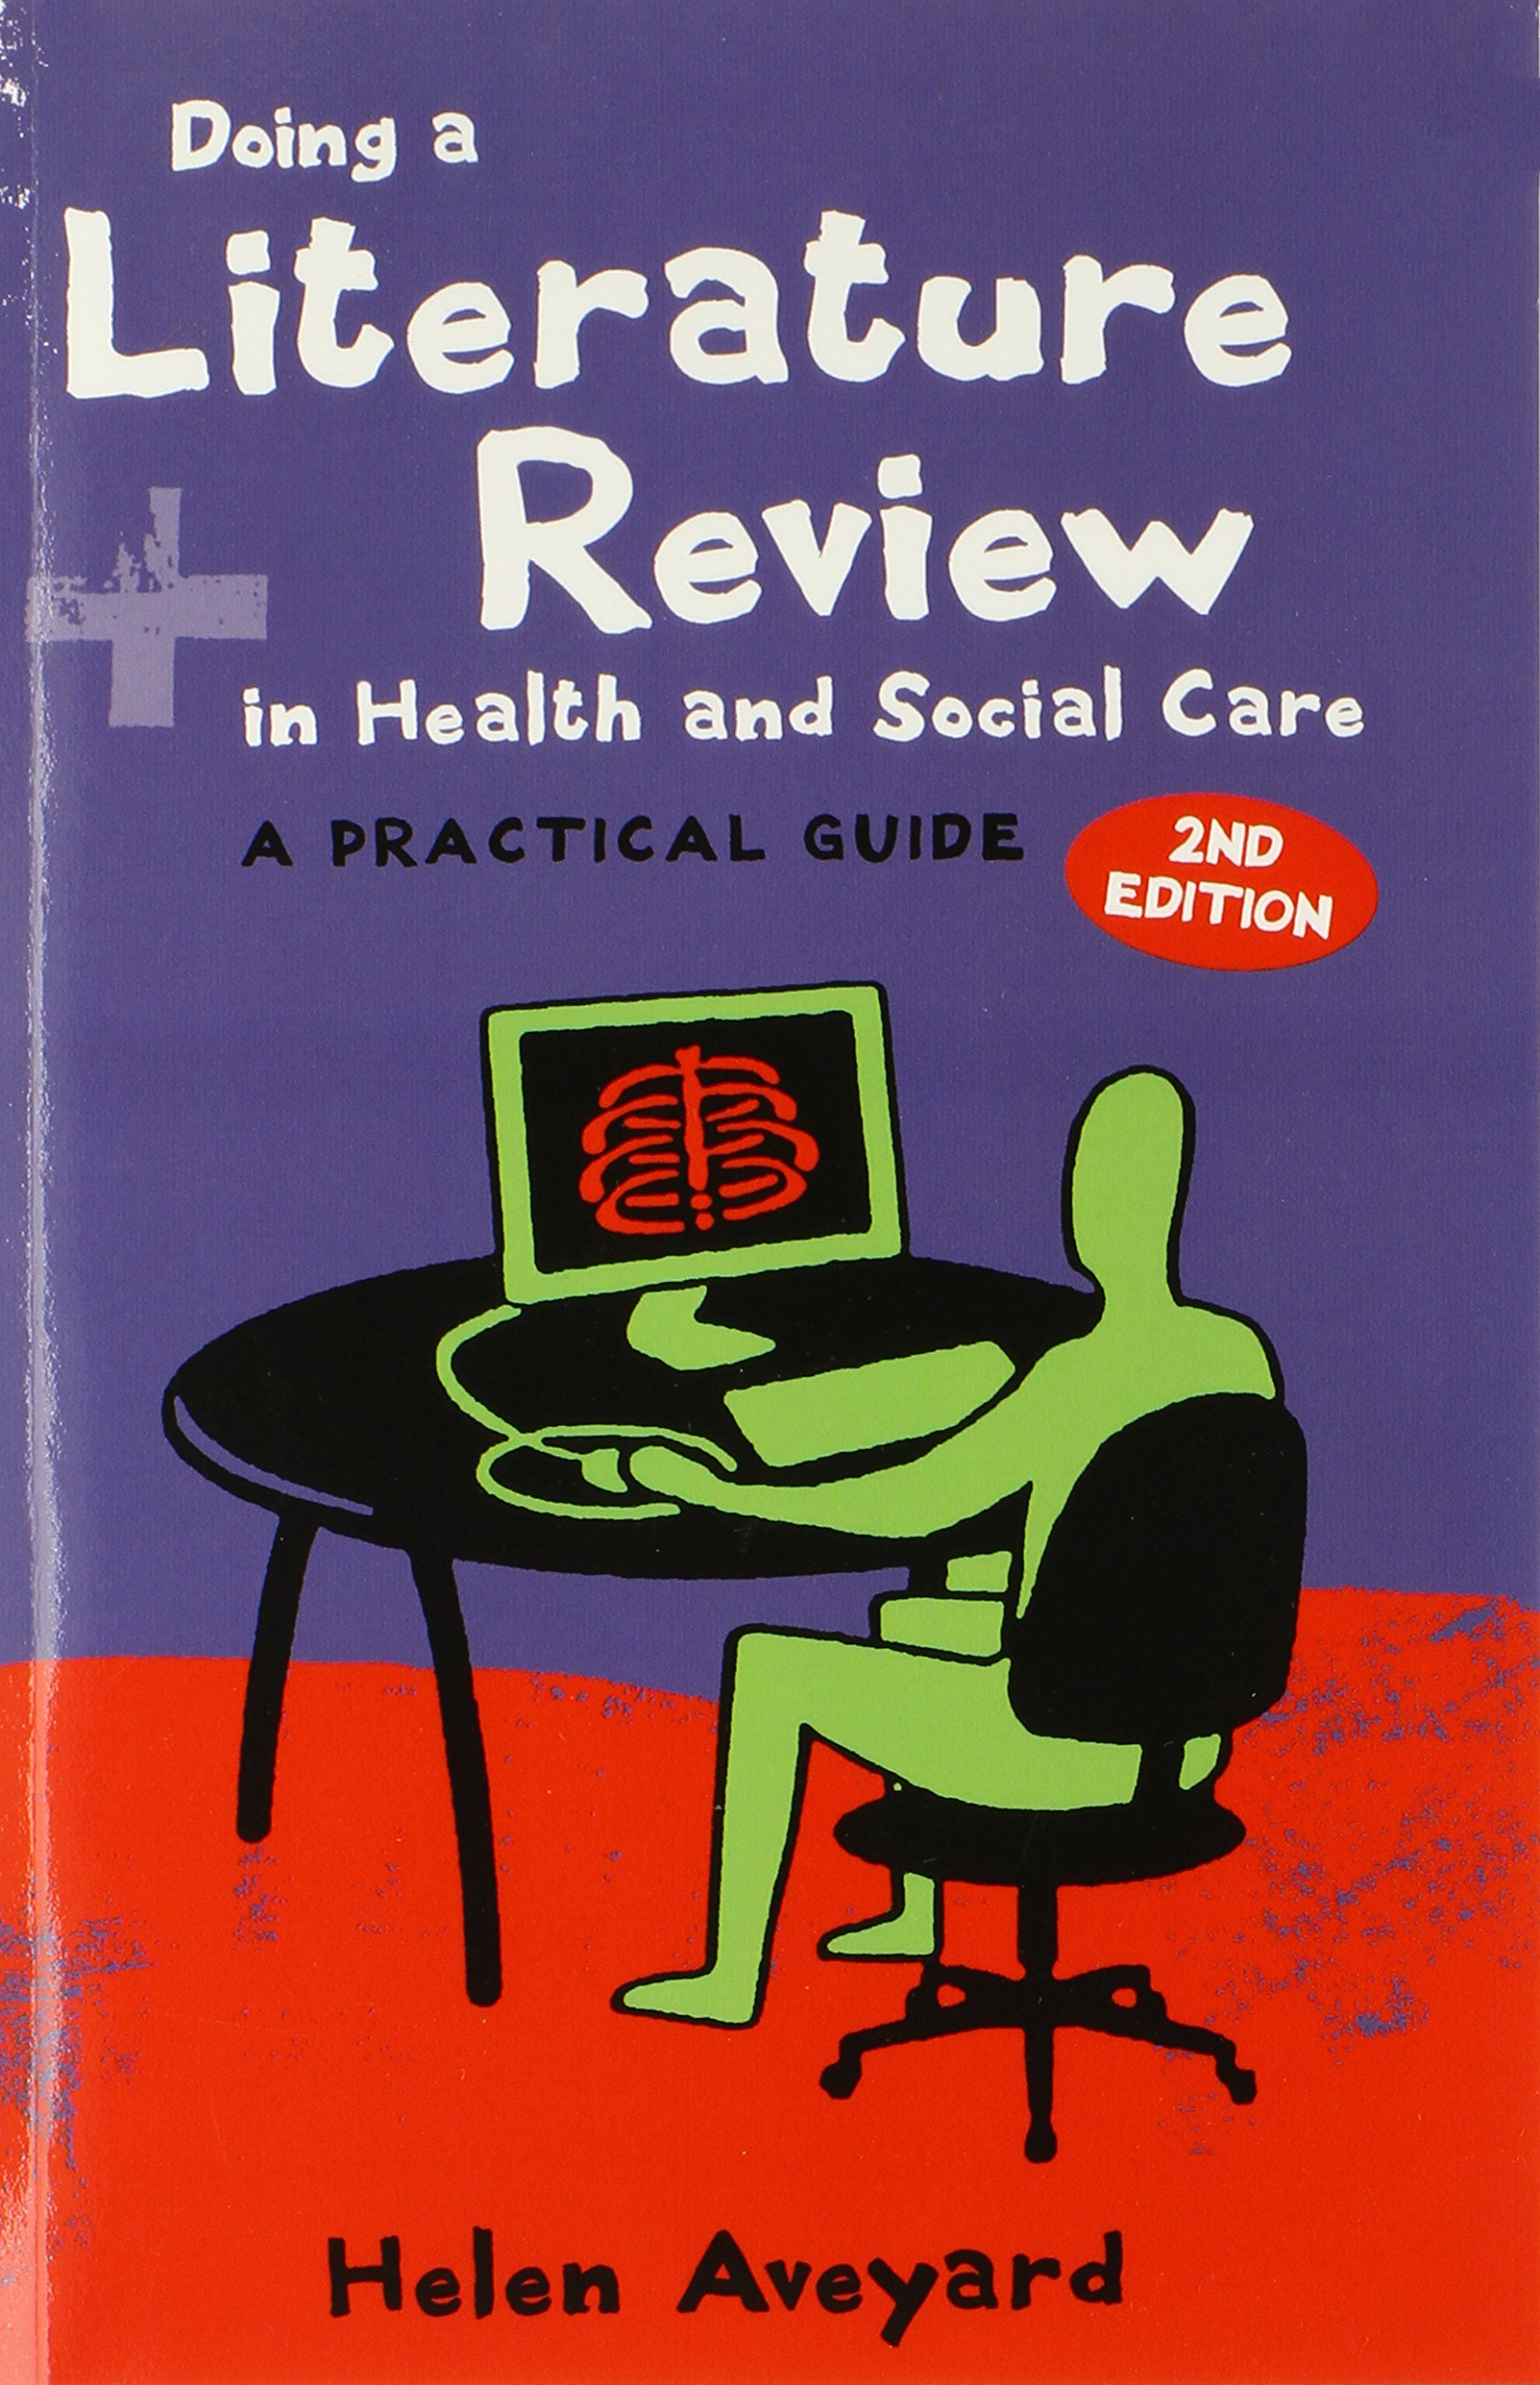 Link to How to write a literature review   opens PDF in new window